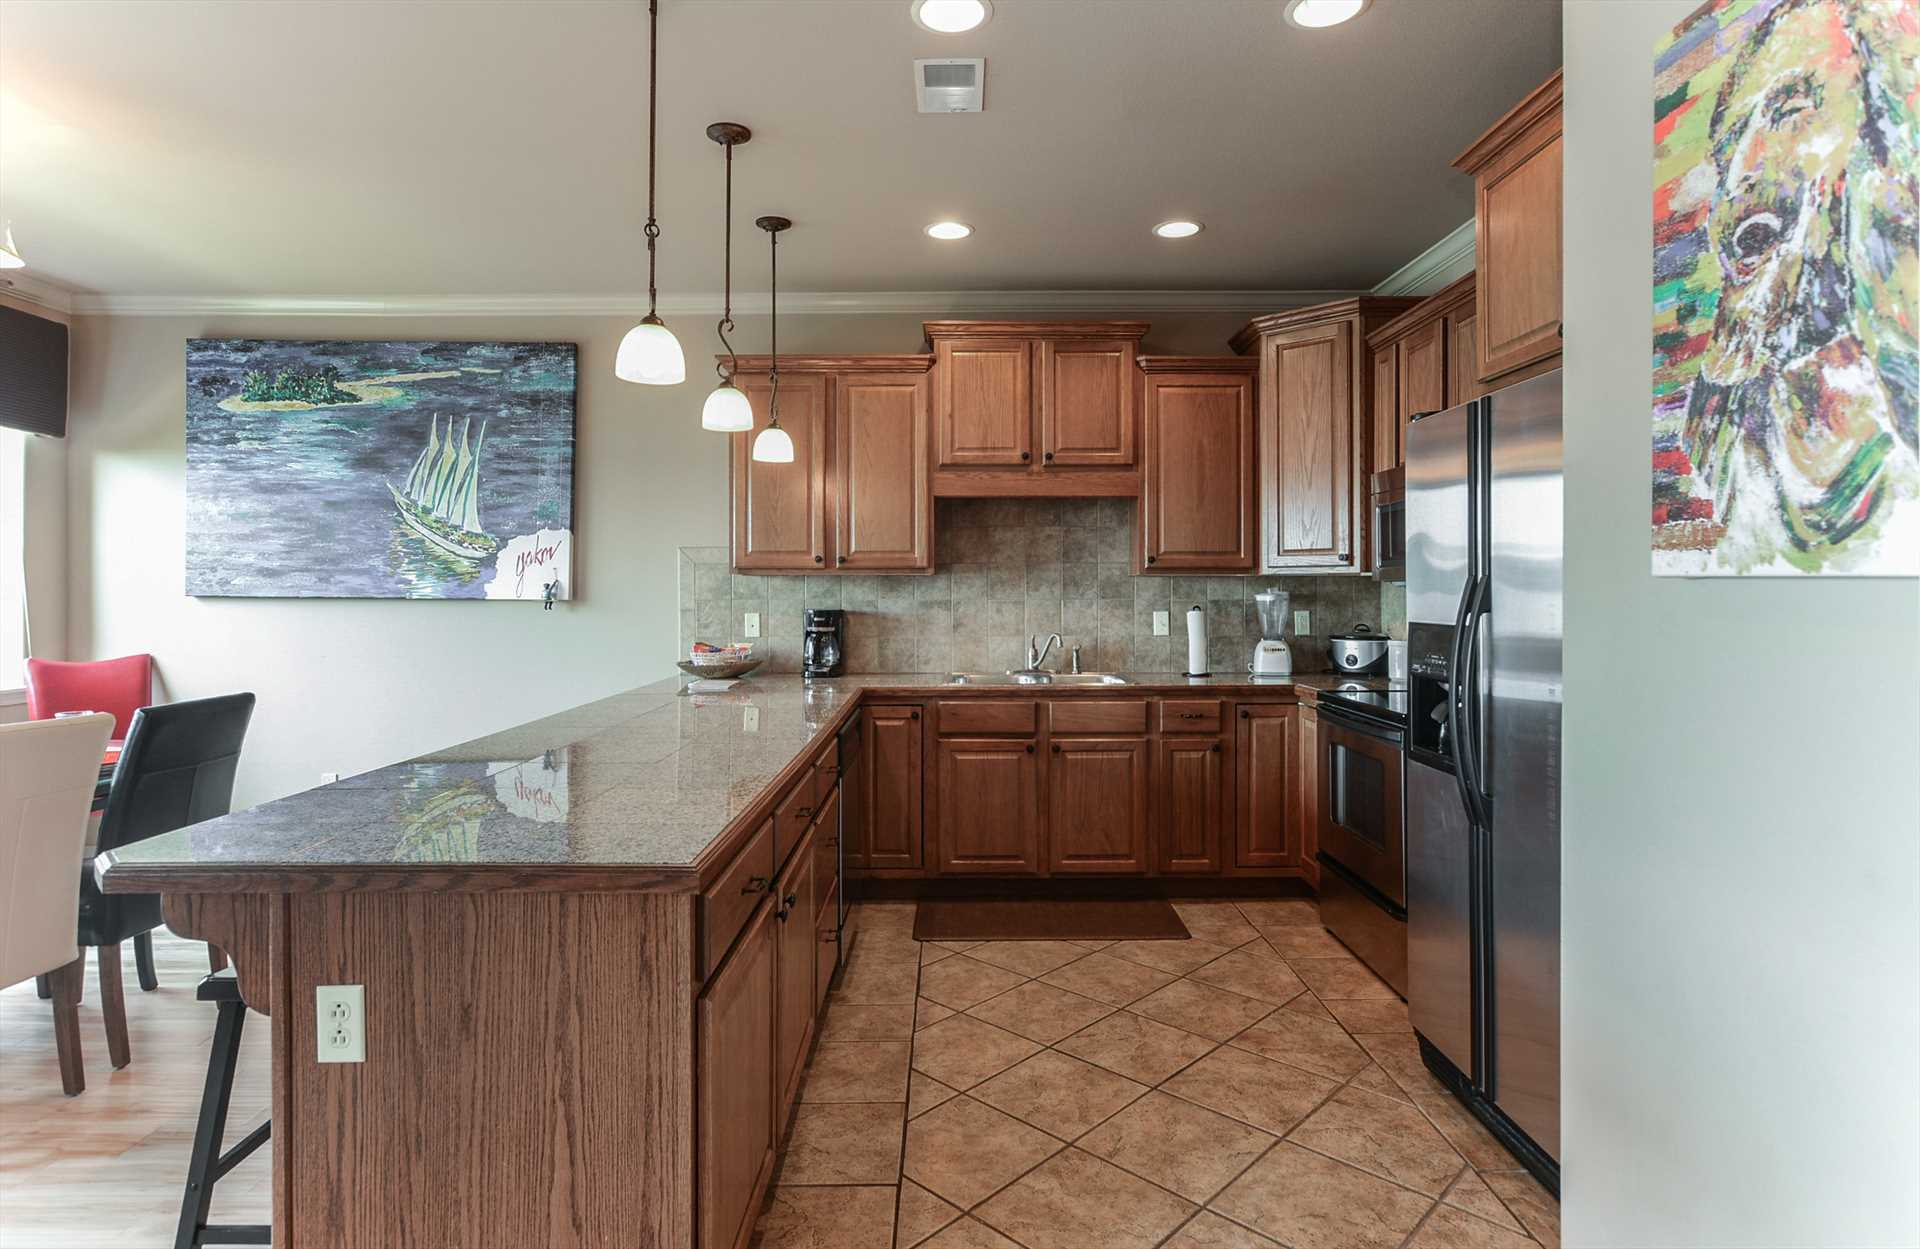 This kitchen comes fully-equipped with everything you need t